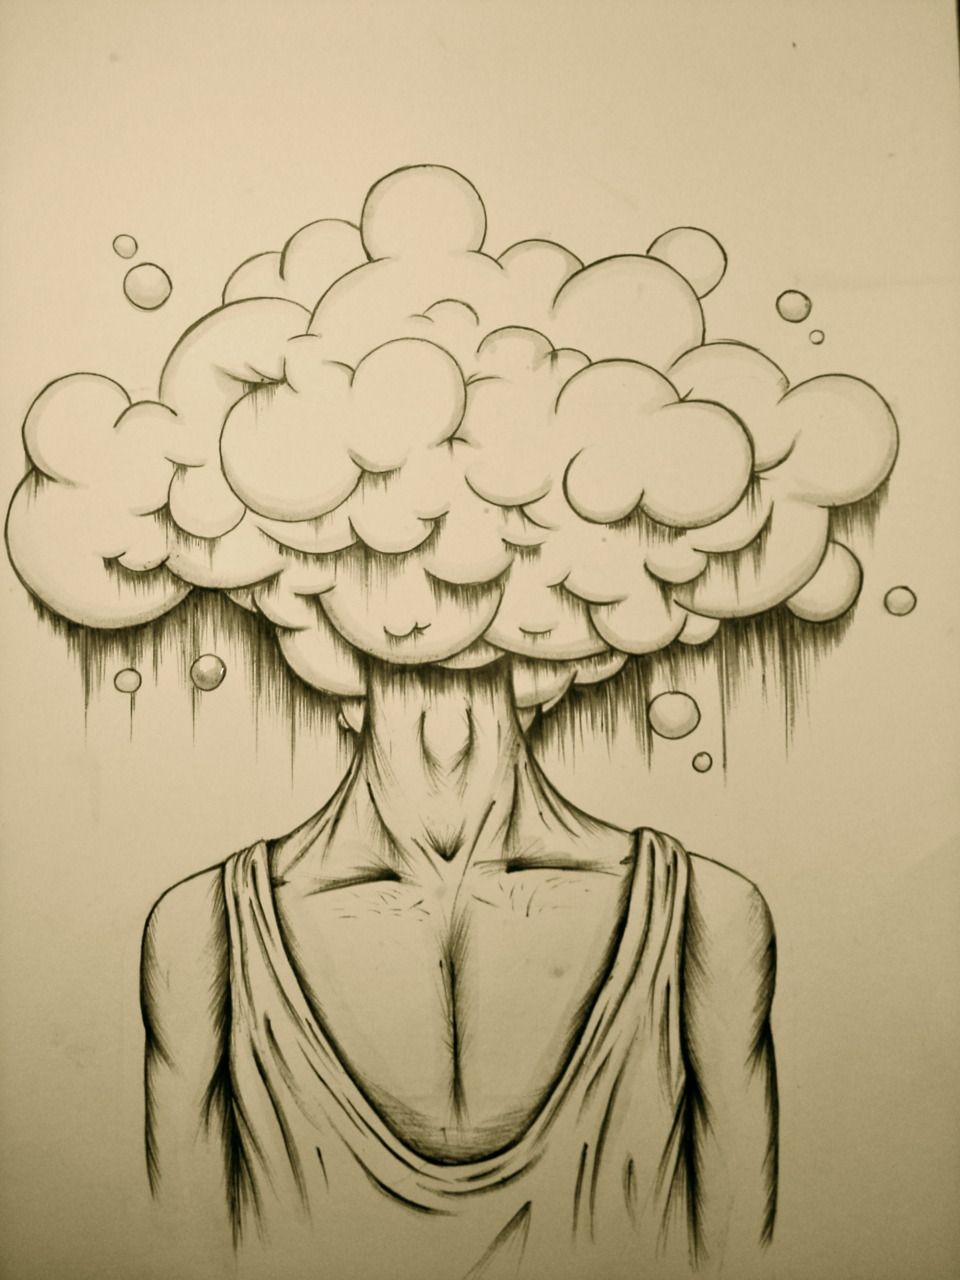 Meaningful Pencil Drawings : meaningful, pencil, drawings, Magic, Magical, Meaningful, Drawings,, Trippy, Sketches